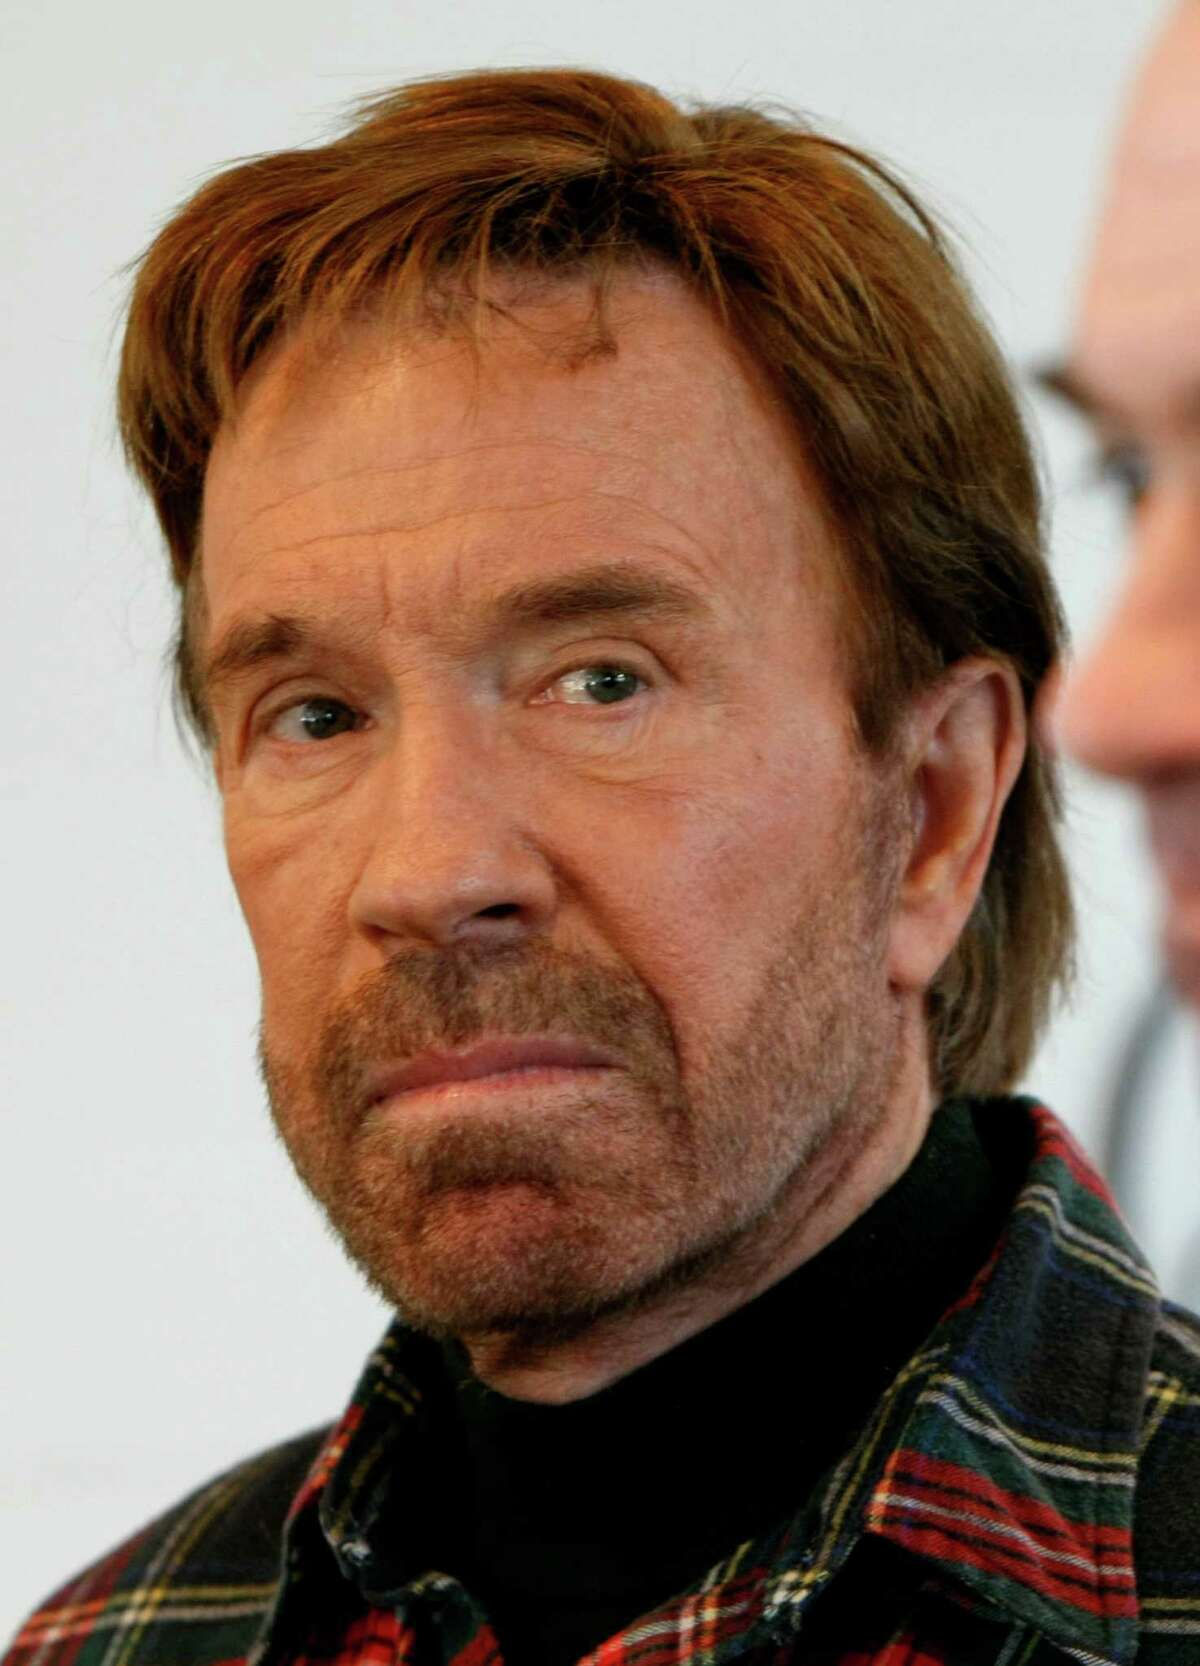 Chuck Norris - (U.S. Air Force 1958-1962) Born Carlos Ray, the martial arts champion earned his nickname